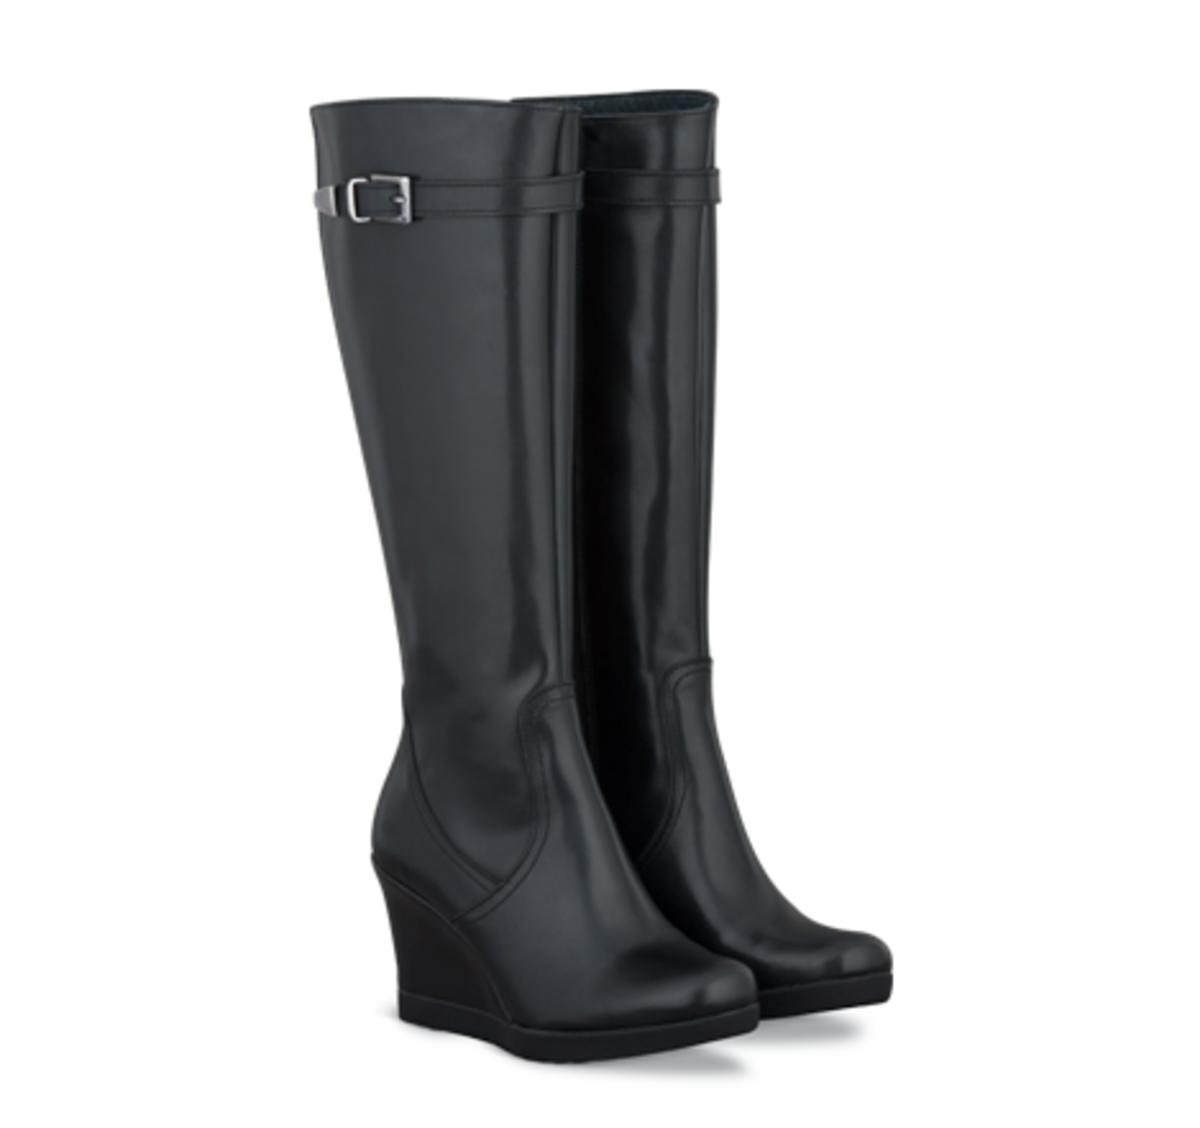 Compton Black Fitted Women's Boot - $290